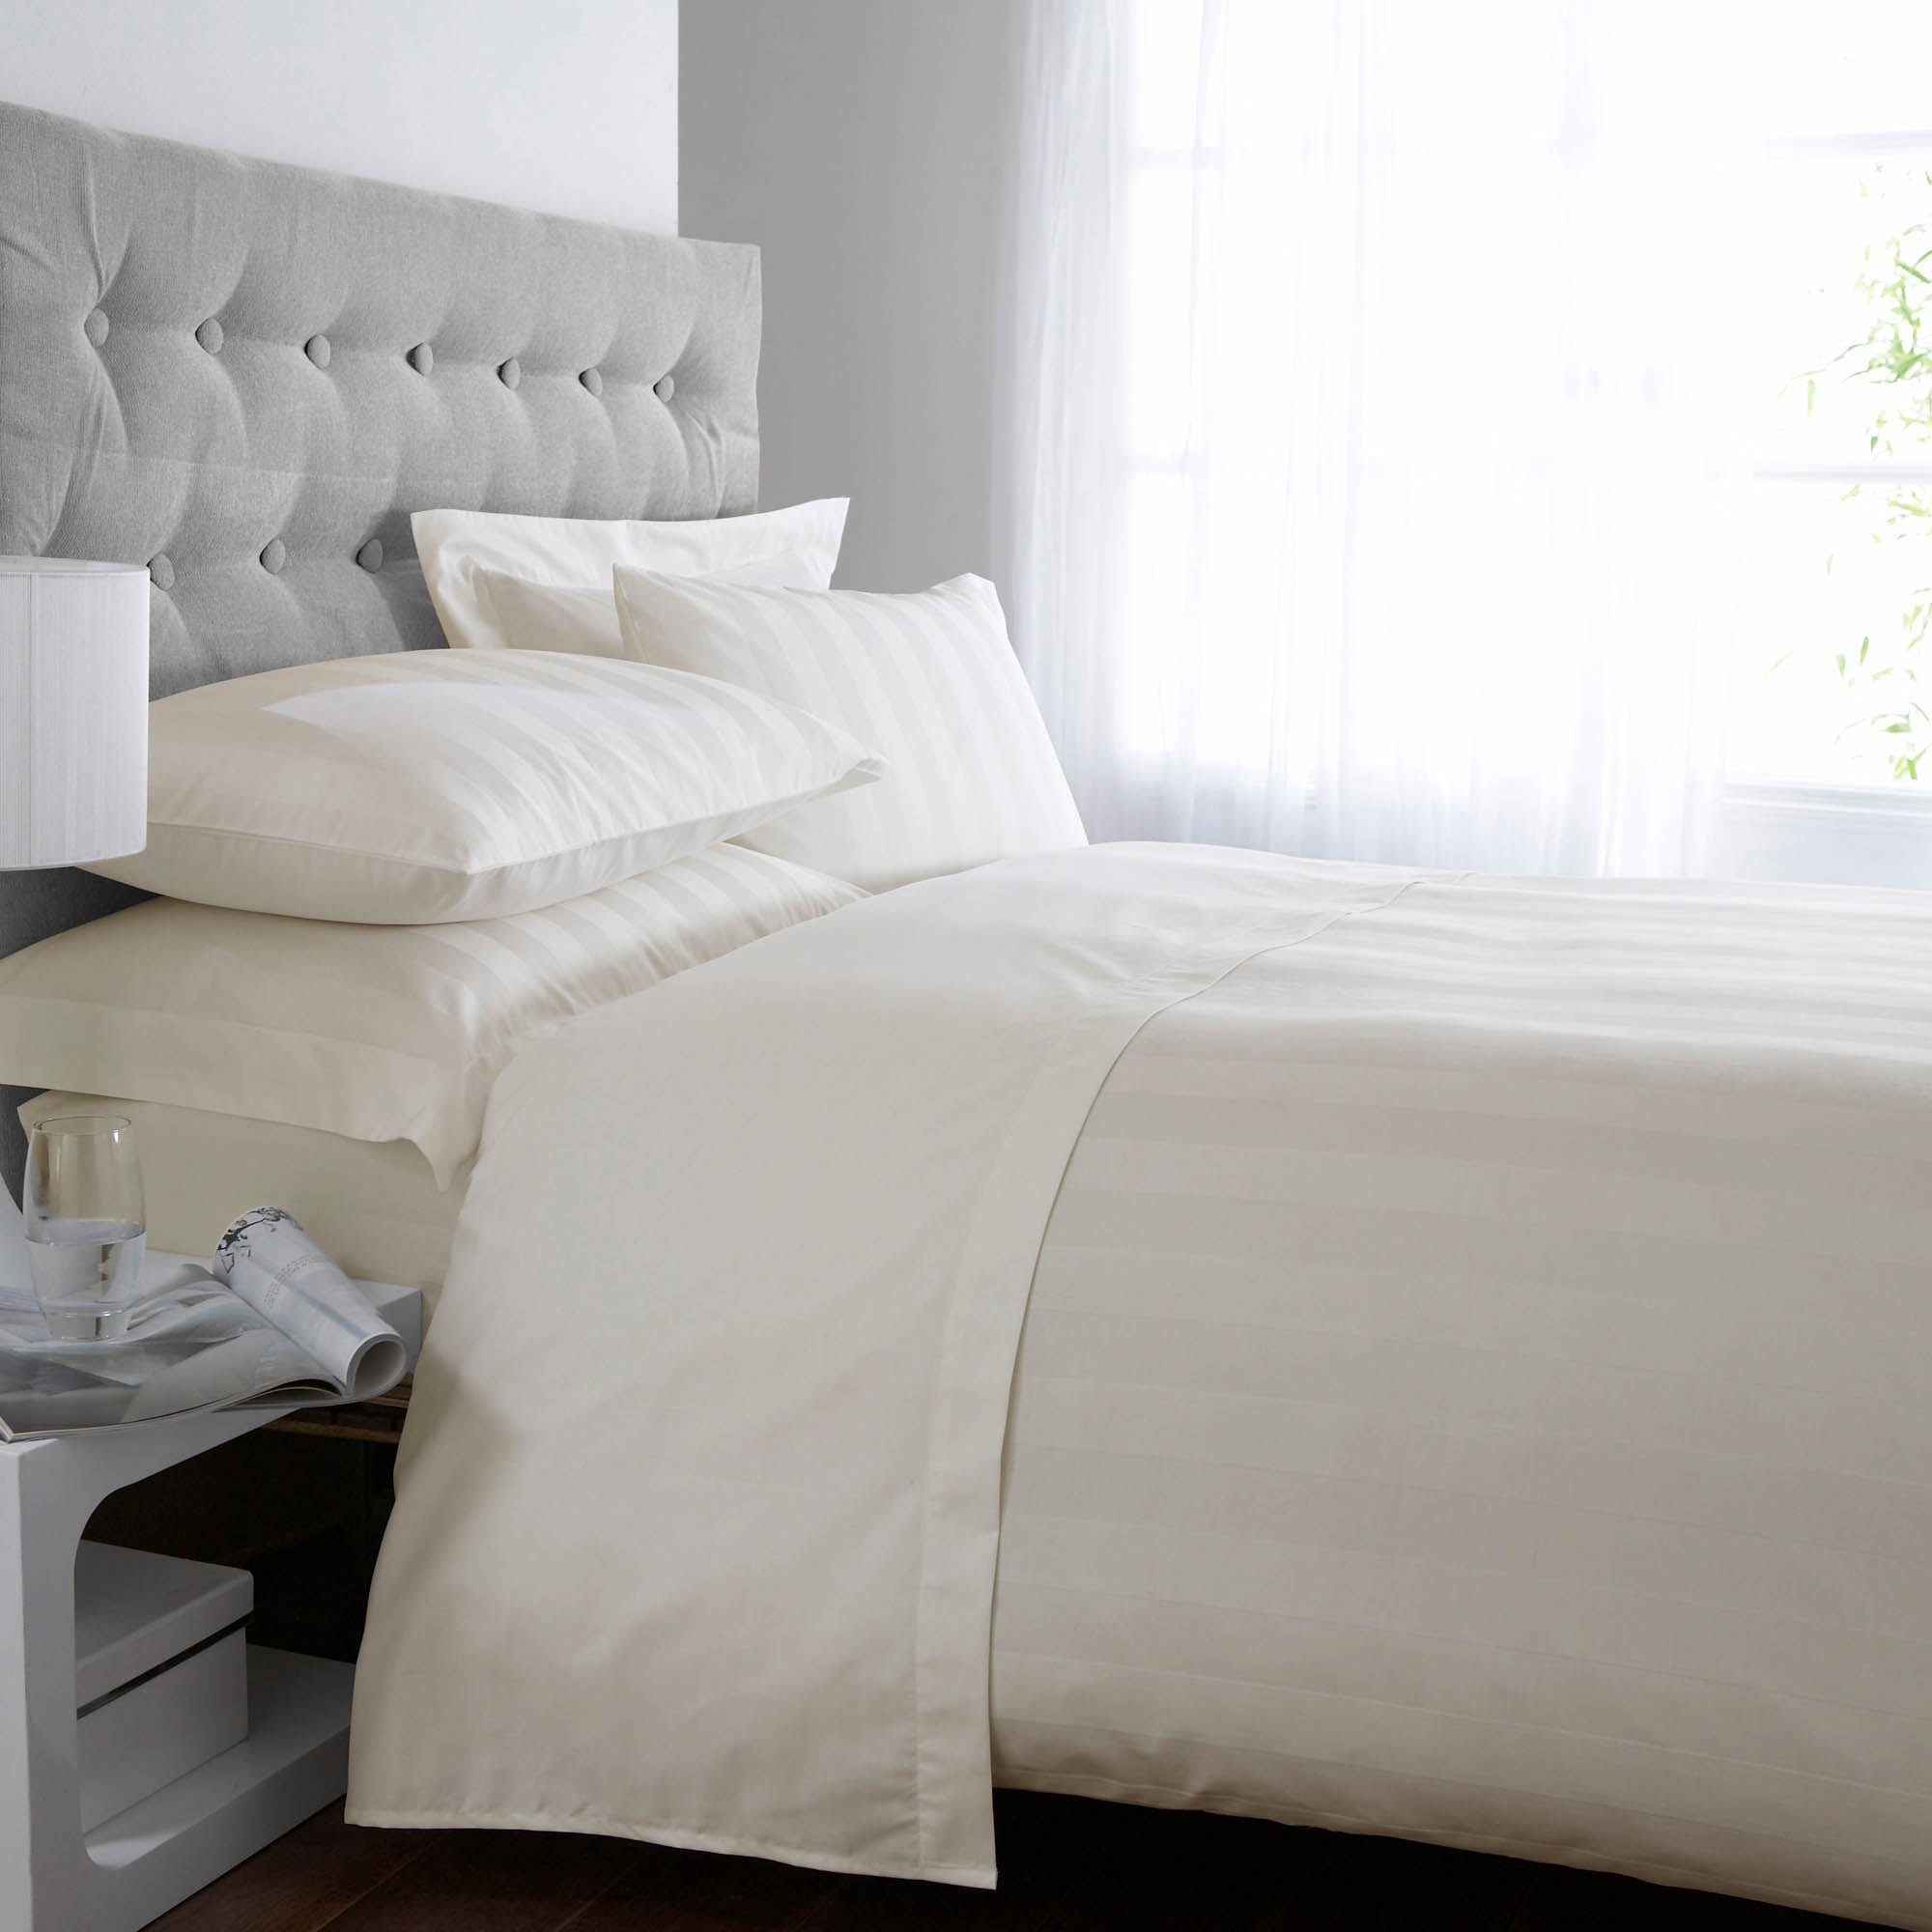 Image of 5A Fifth Avenue Egyptian Cotton 300 Thread Count Stripe Cream Duvet Cover Cream